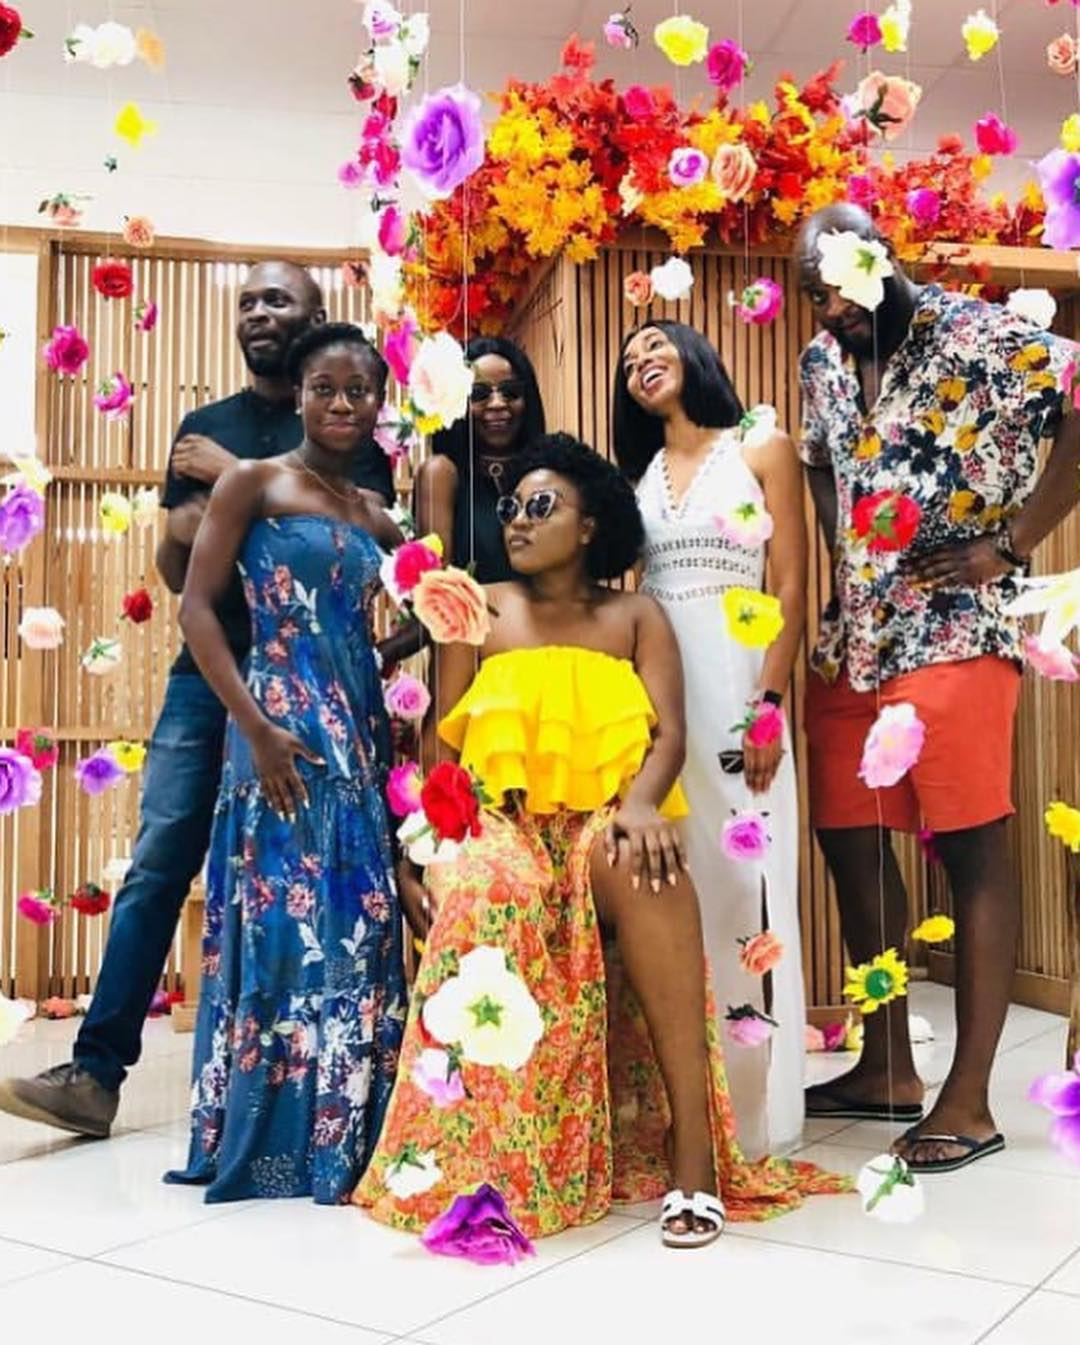 ICYMI: The Accra It-Crowd Came Out to Experience VForVanity's Immersive Art Installation At Mhoseenu Design Studio